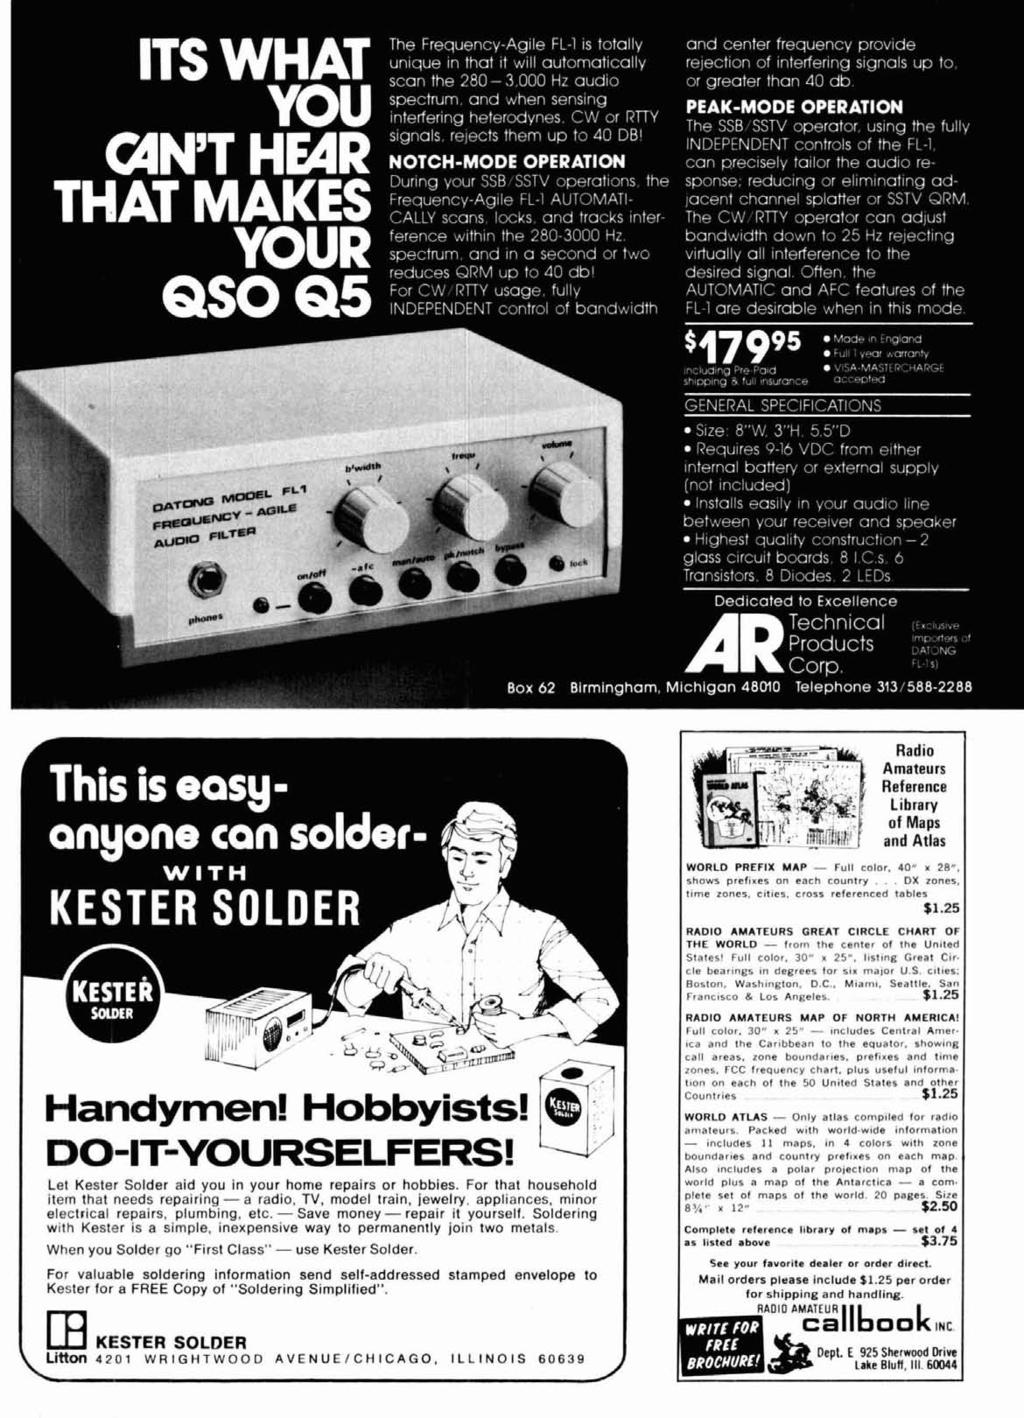 Radio Ham Magazine July 1978 J Antenna 74 Variable Power Supply 36 Circuit Board Repair Stock Photo Images 1933 Phase Locked Loops 54 Voltage Calibrator 68 Colpitts Oscillator Design 78 Pdf